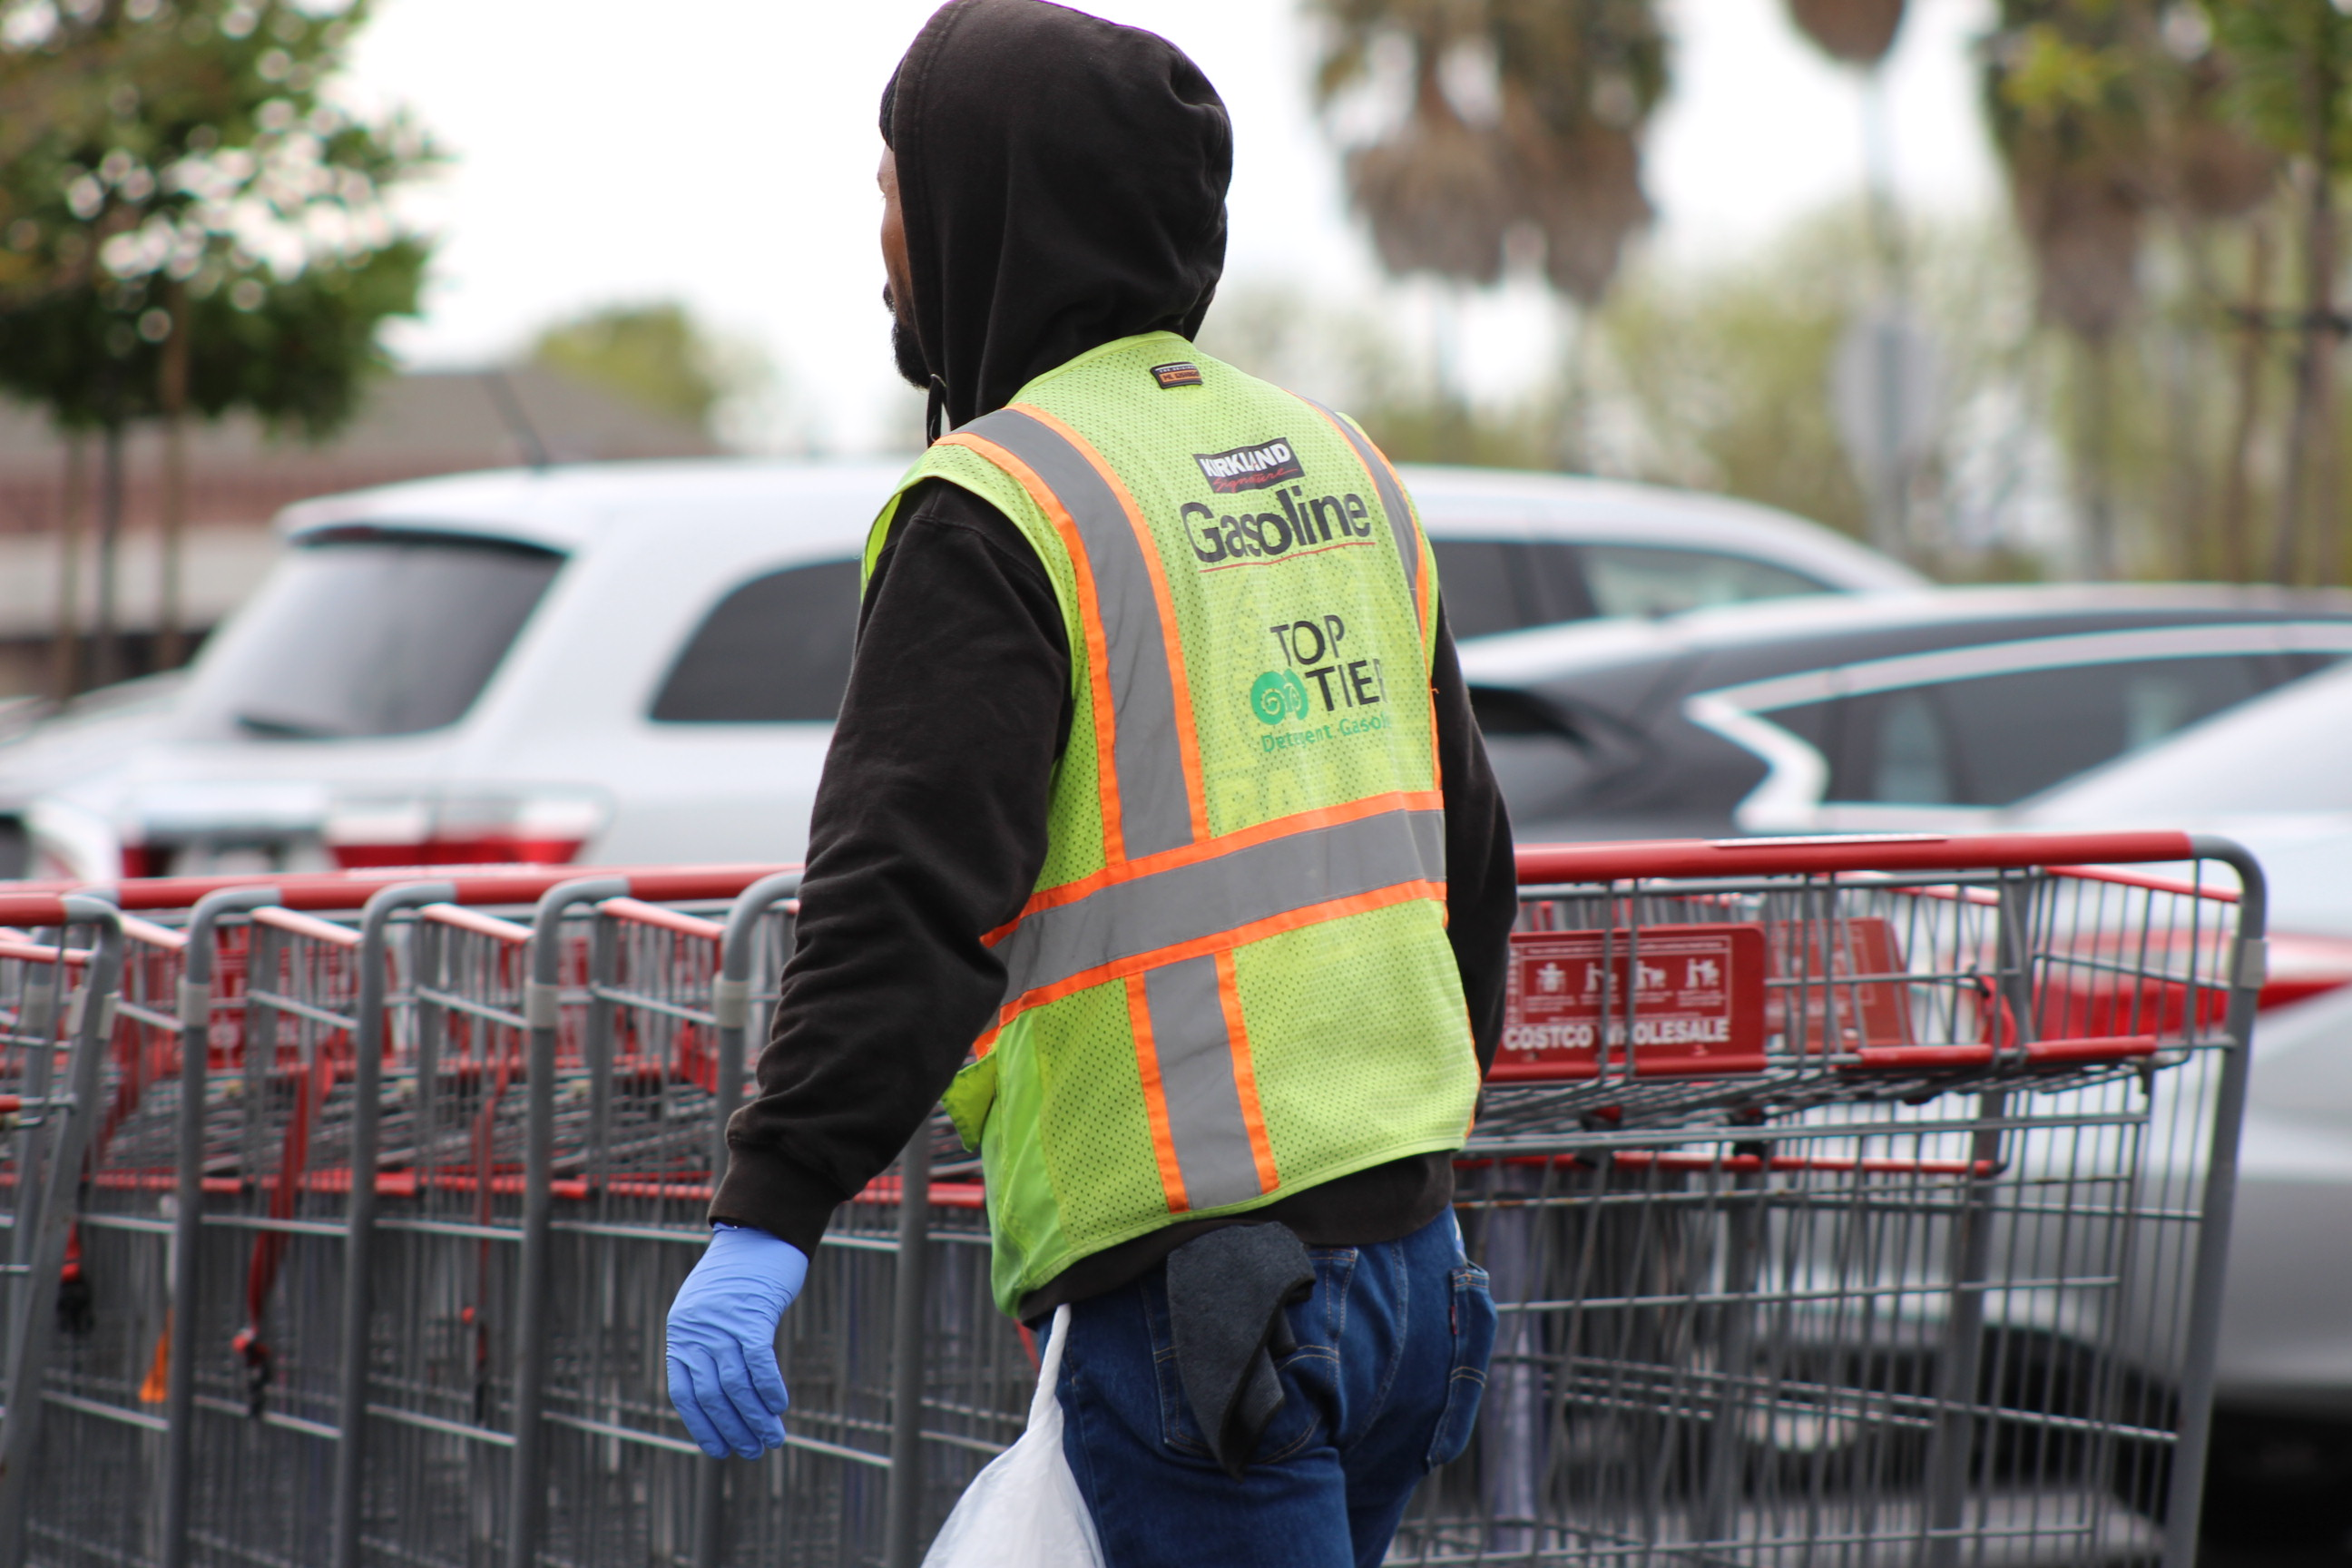 Costco worker wearing gloves during COVID-19 pandemic in parking lot | Karen Foshay